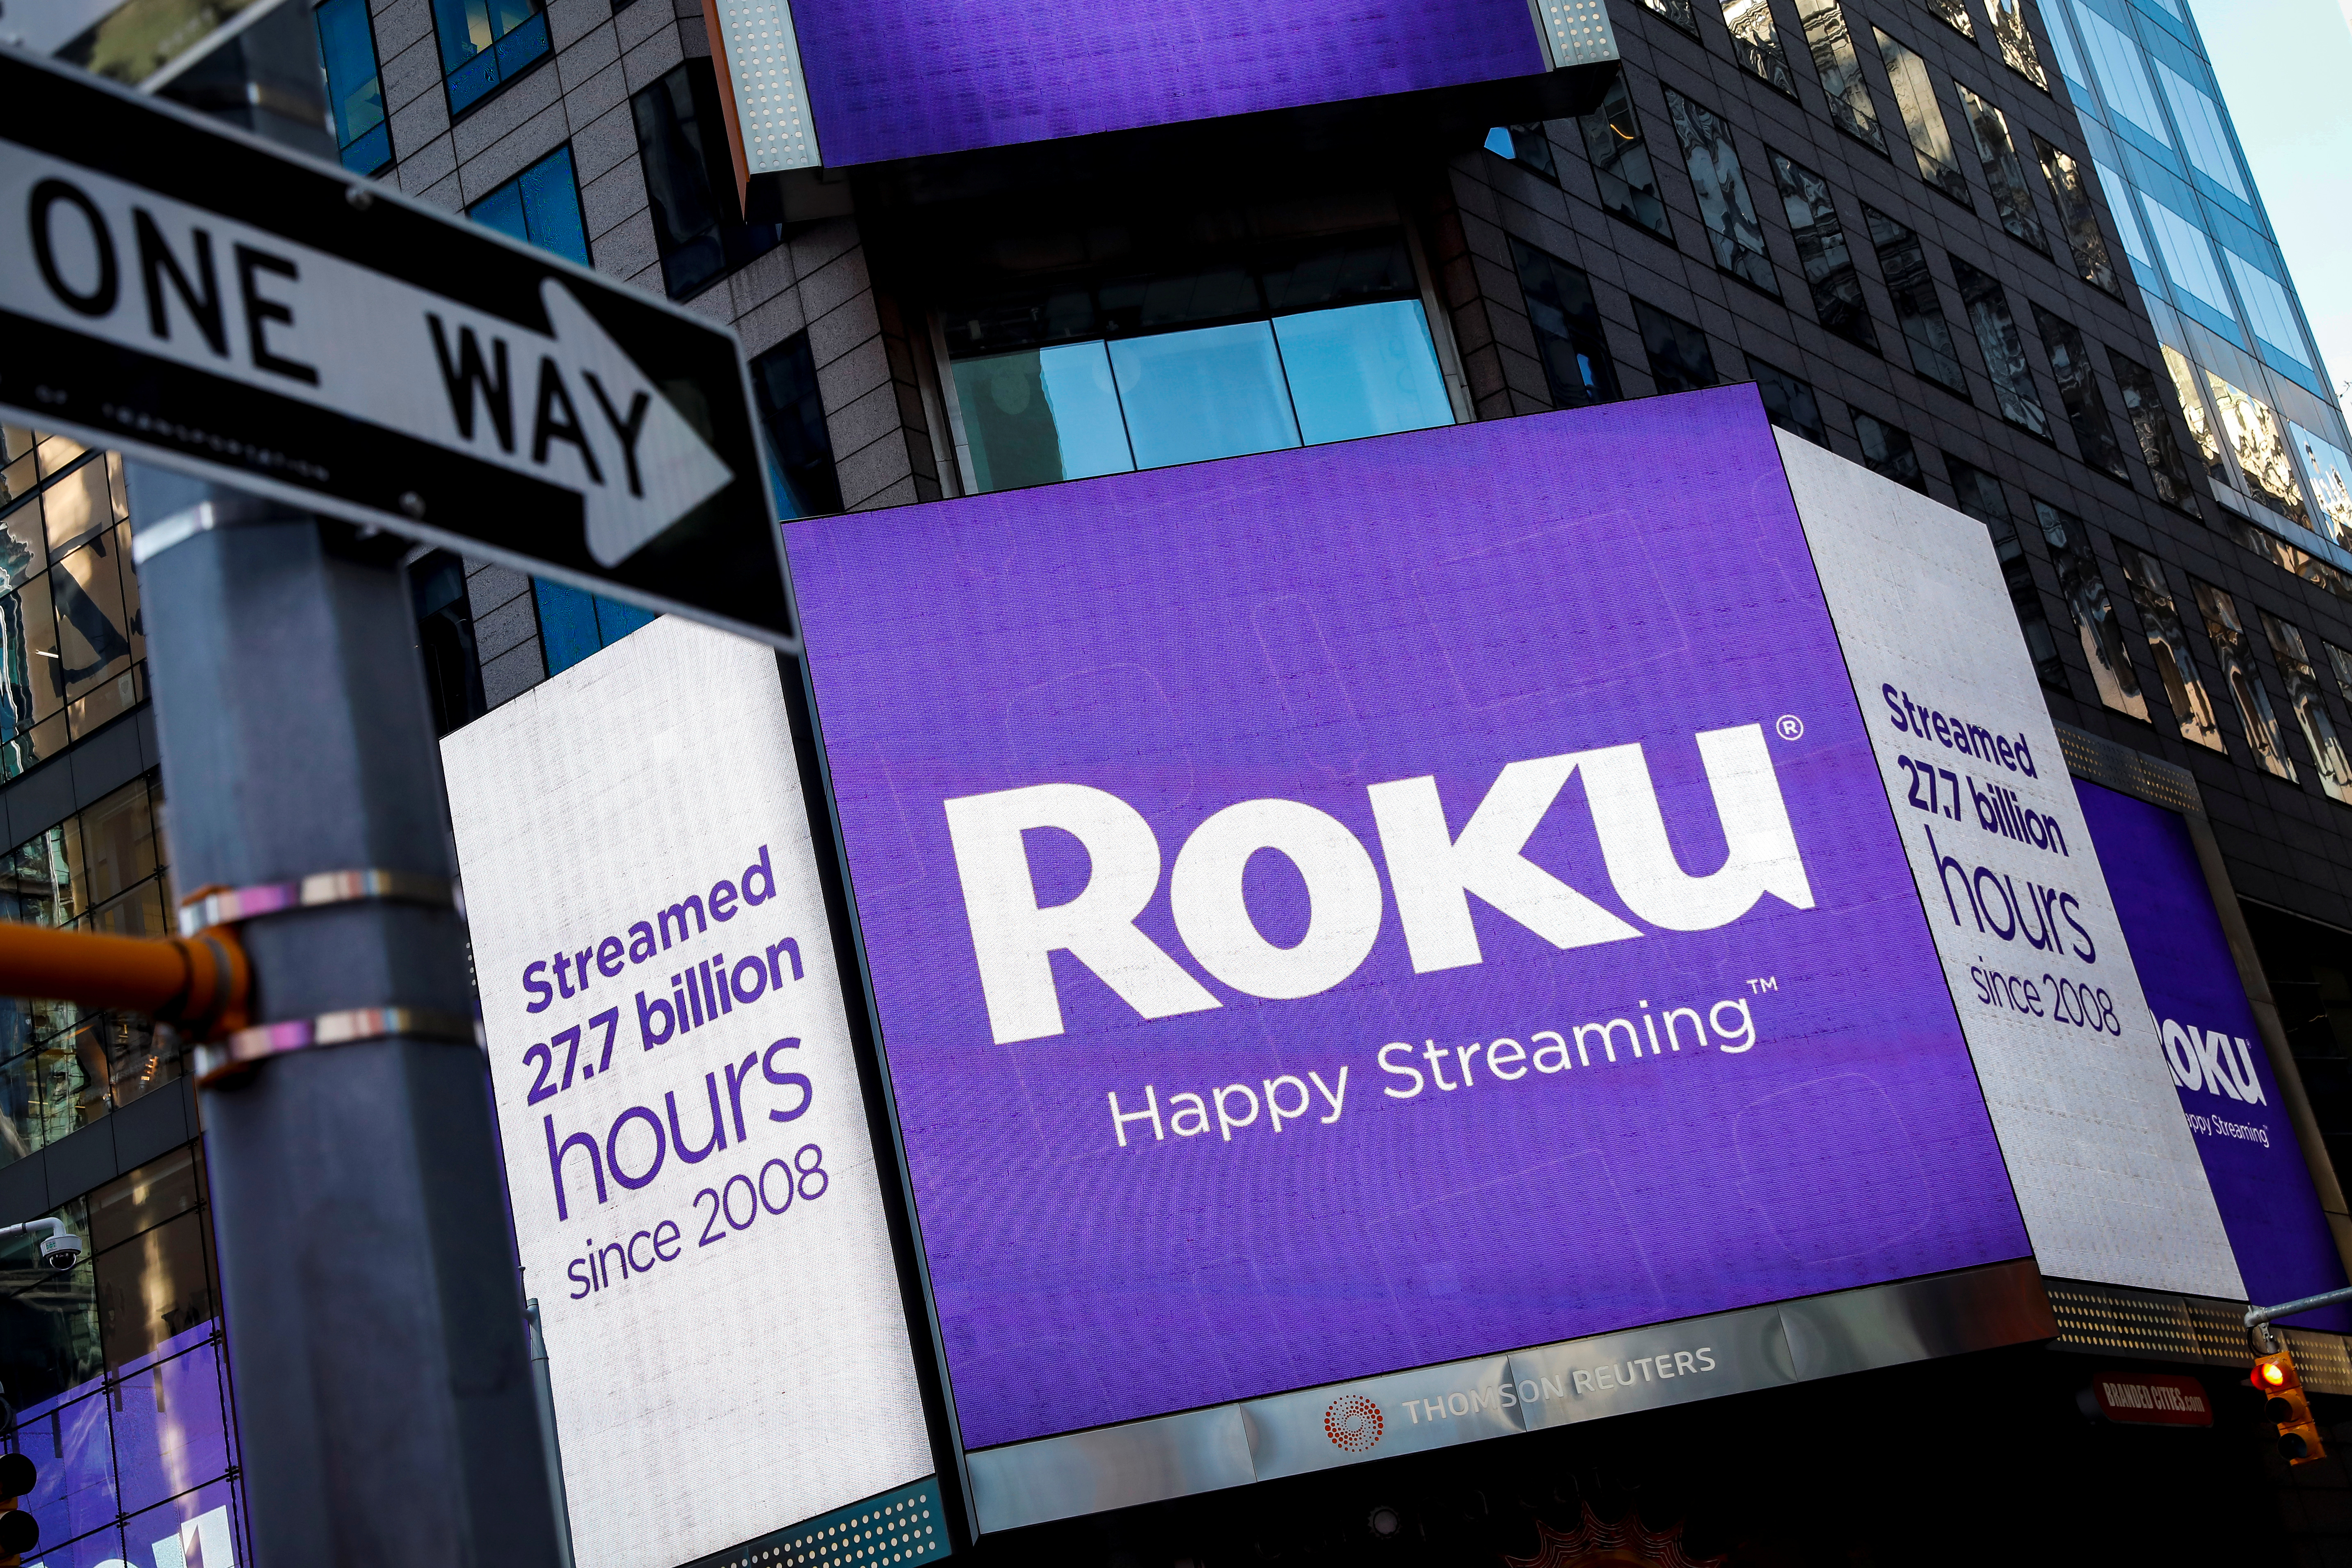 A video sign displays the logo for Roku Inc, a Fox-backed video streaming firm, in Times Square after the company's IPO at the Nasdaq Market in New York, U.S., September 28, 2017. REUTERS/Brendan McDermid